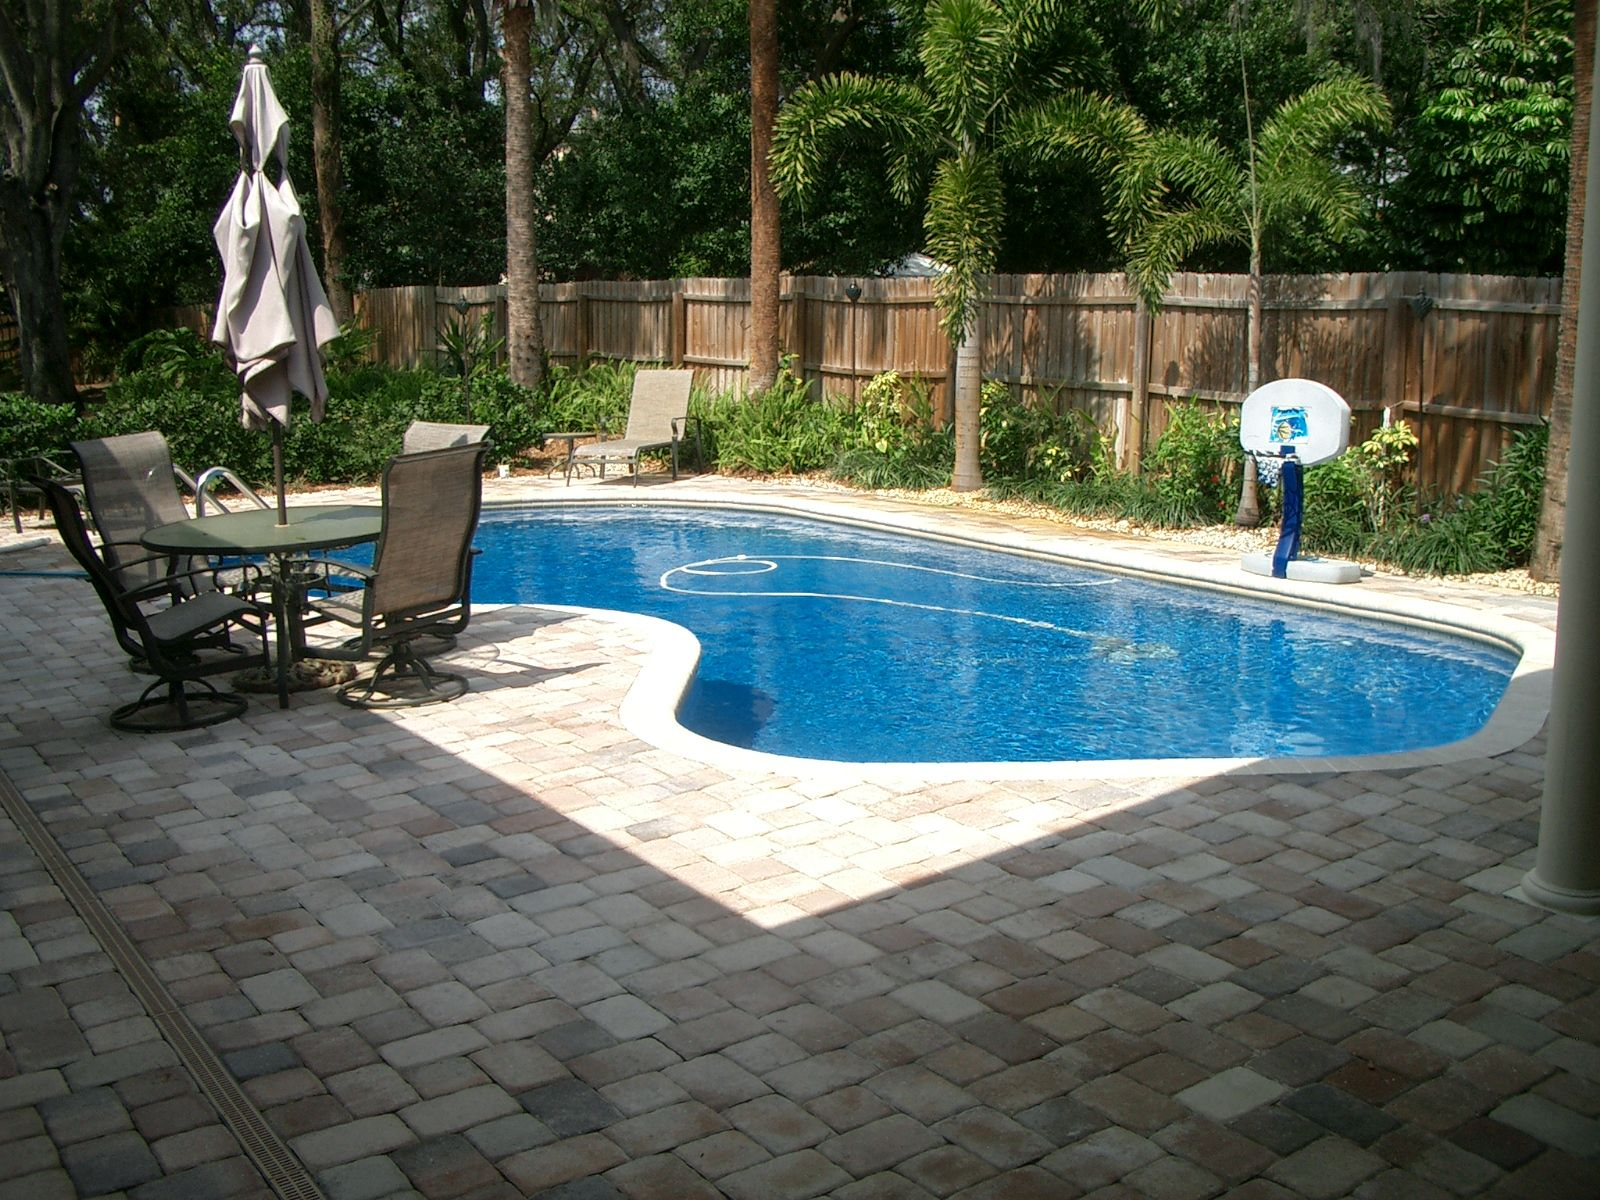 backyard landscaping ideas swimming pool design read more at wwwhomestheticsnet - Pool Designs Ideas